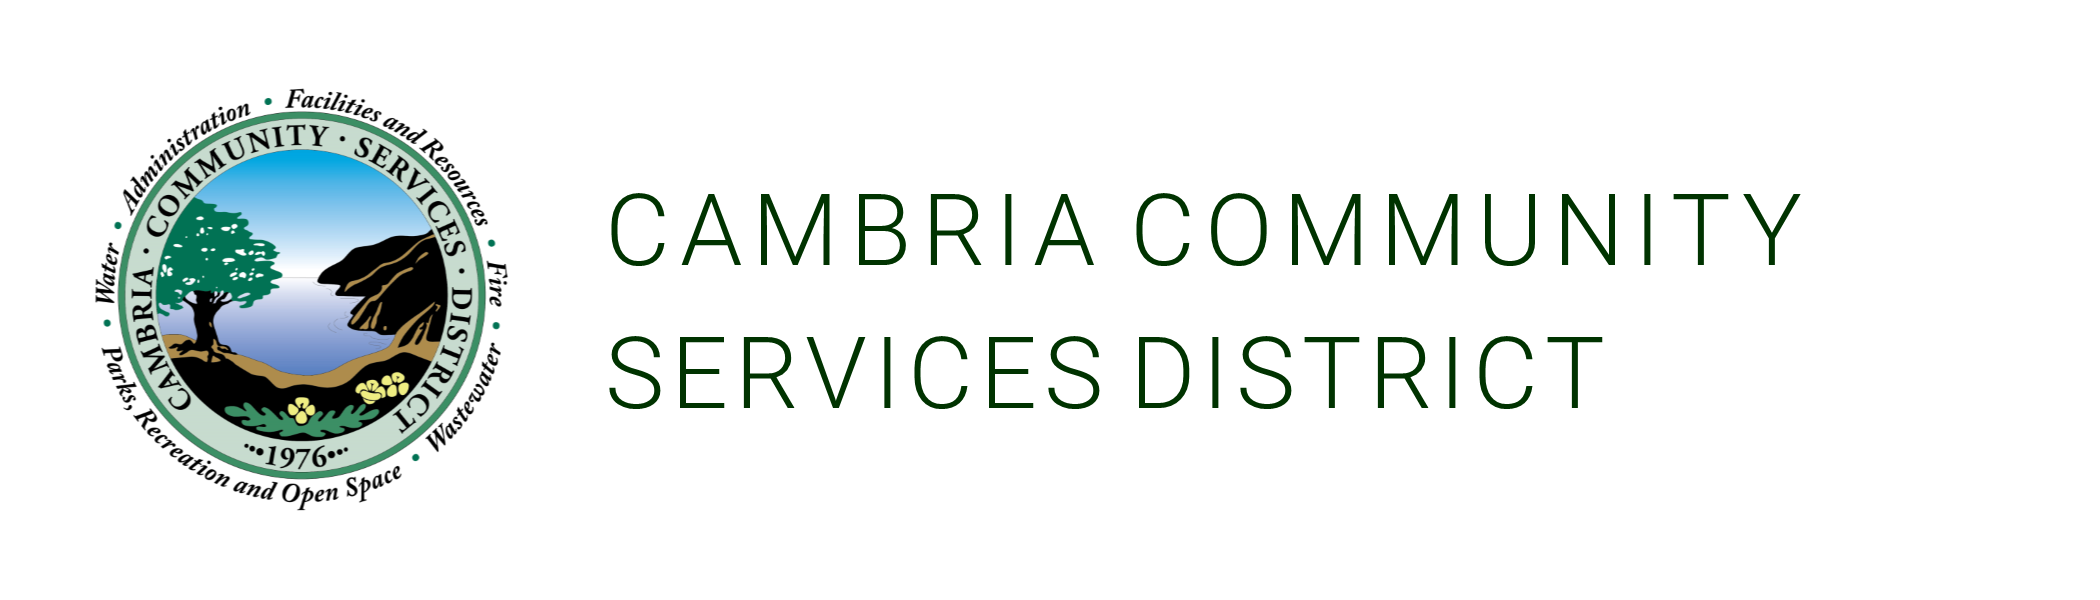 Cambria Community Services District